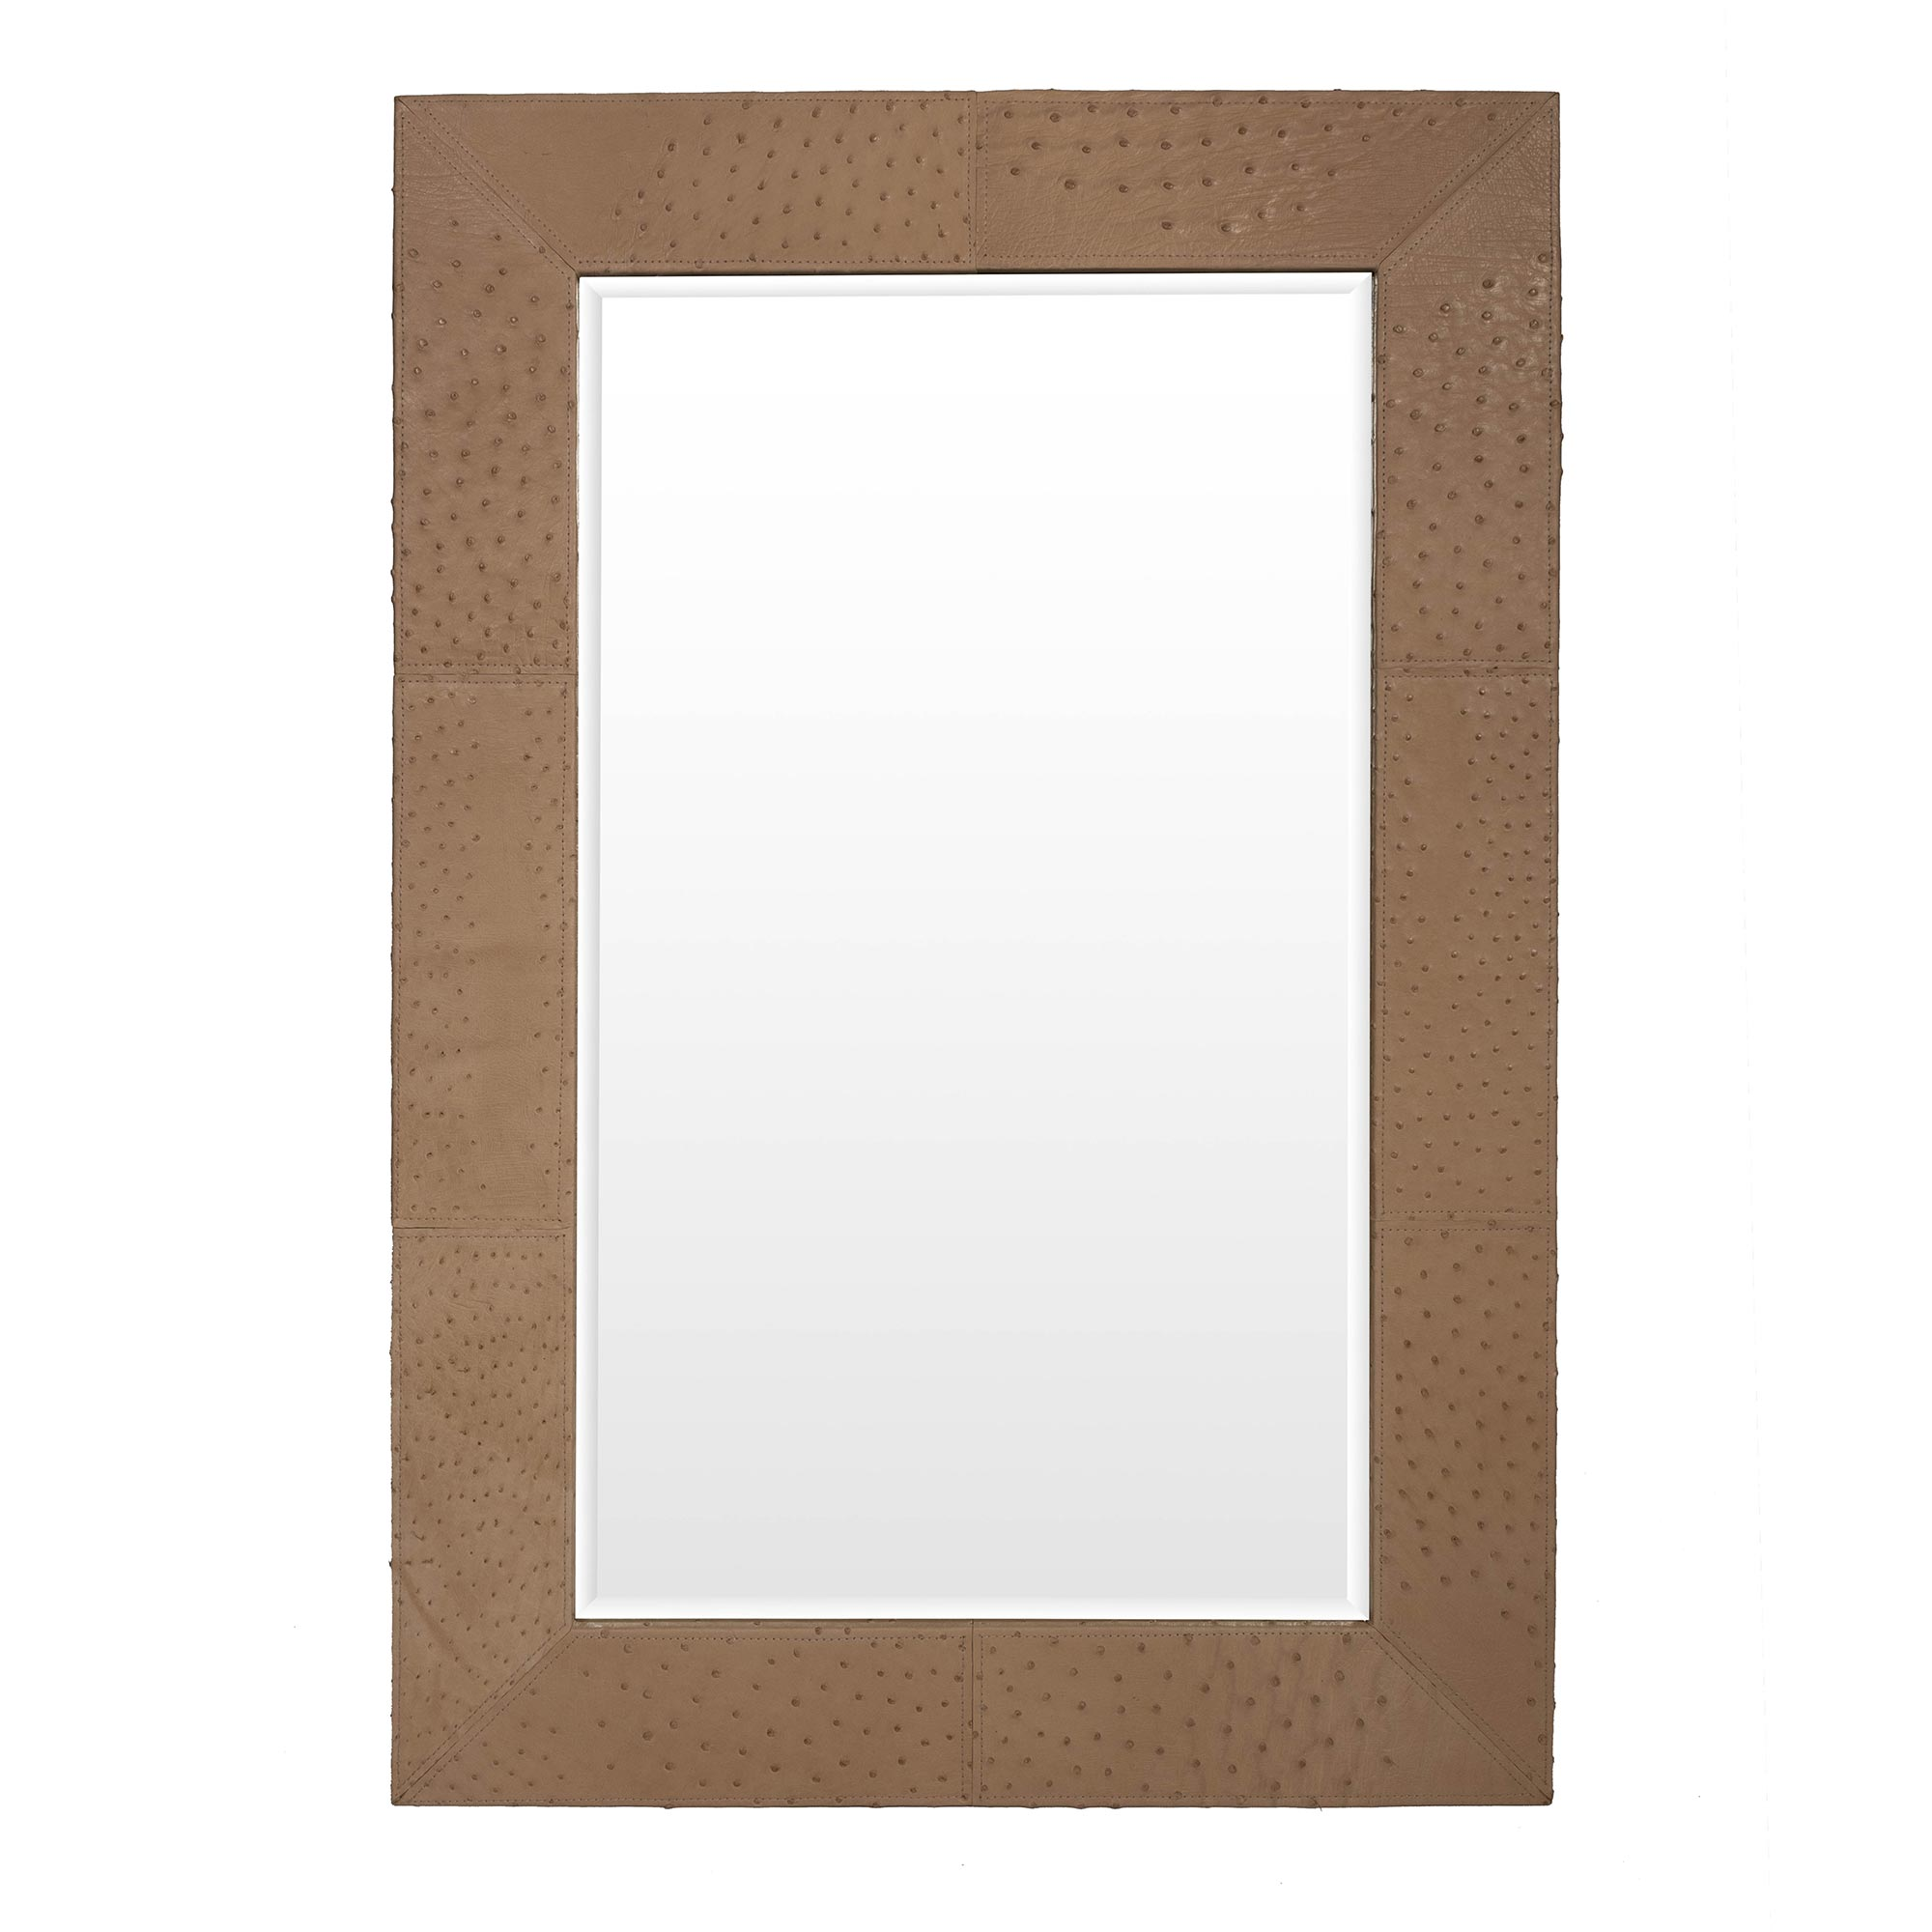 Ostrich Leather Mirror - Rectangle - Cream